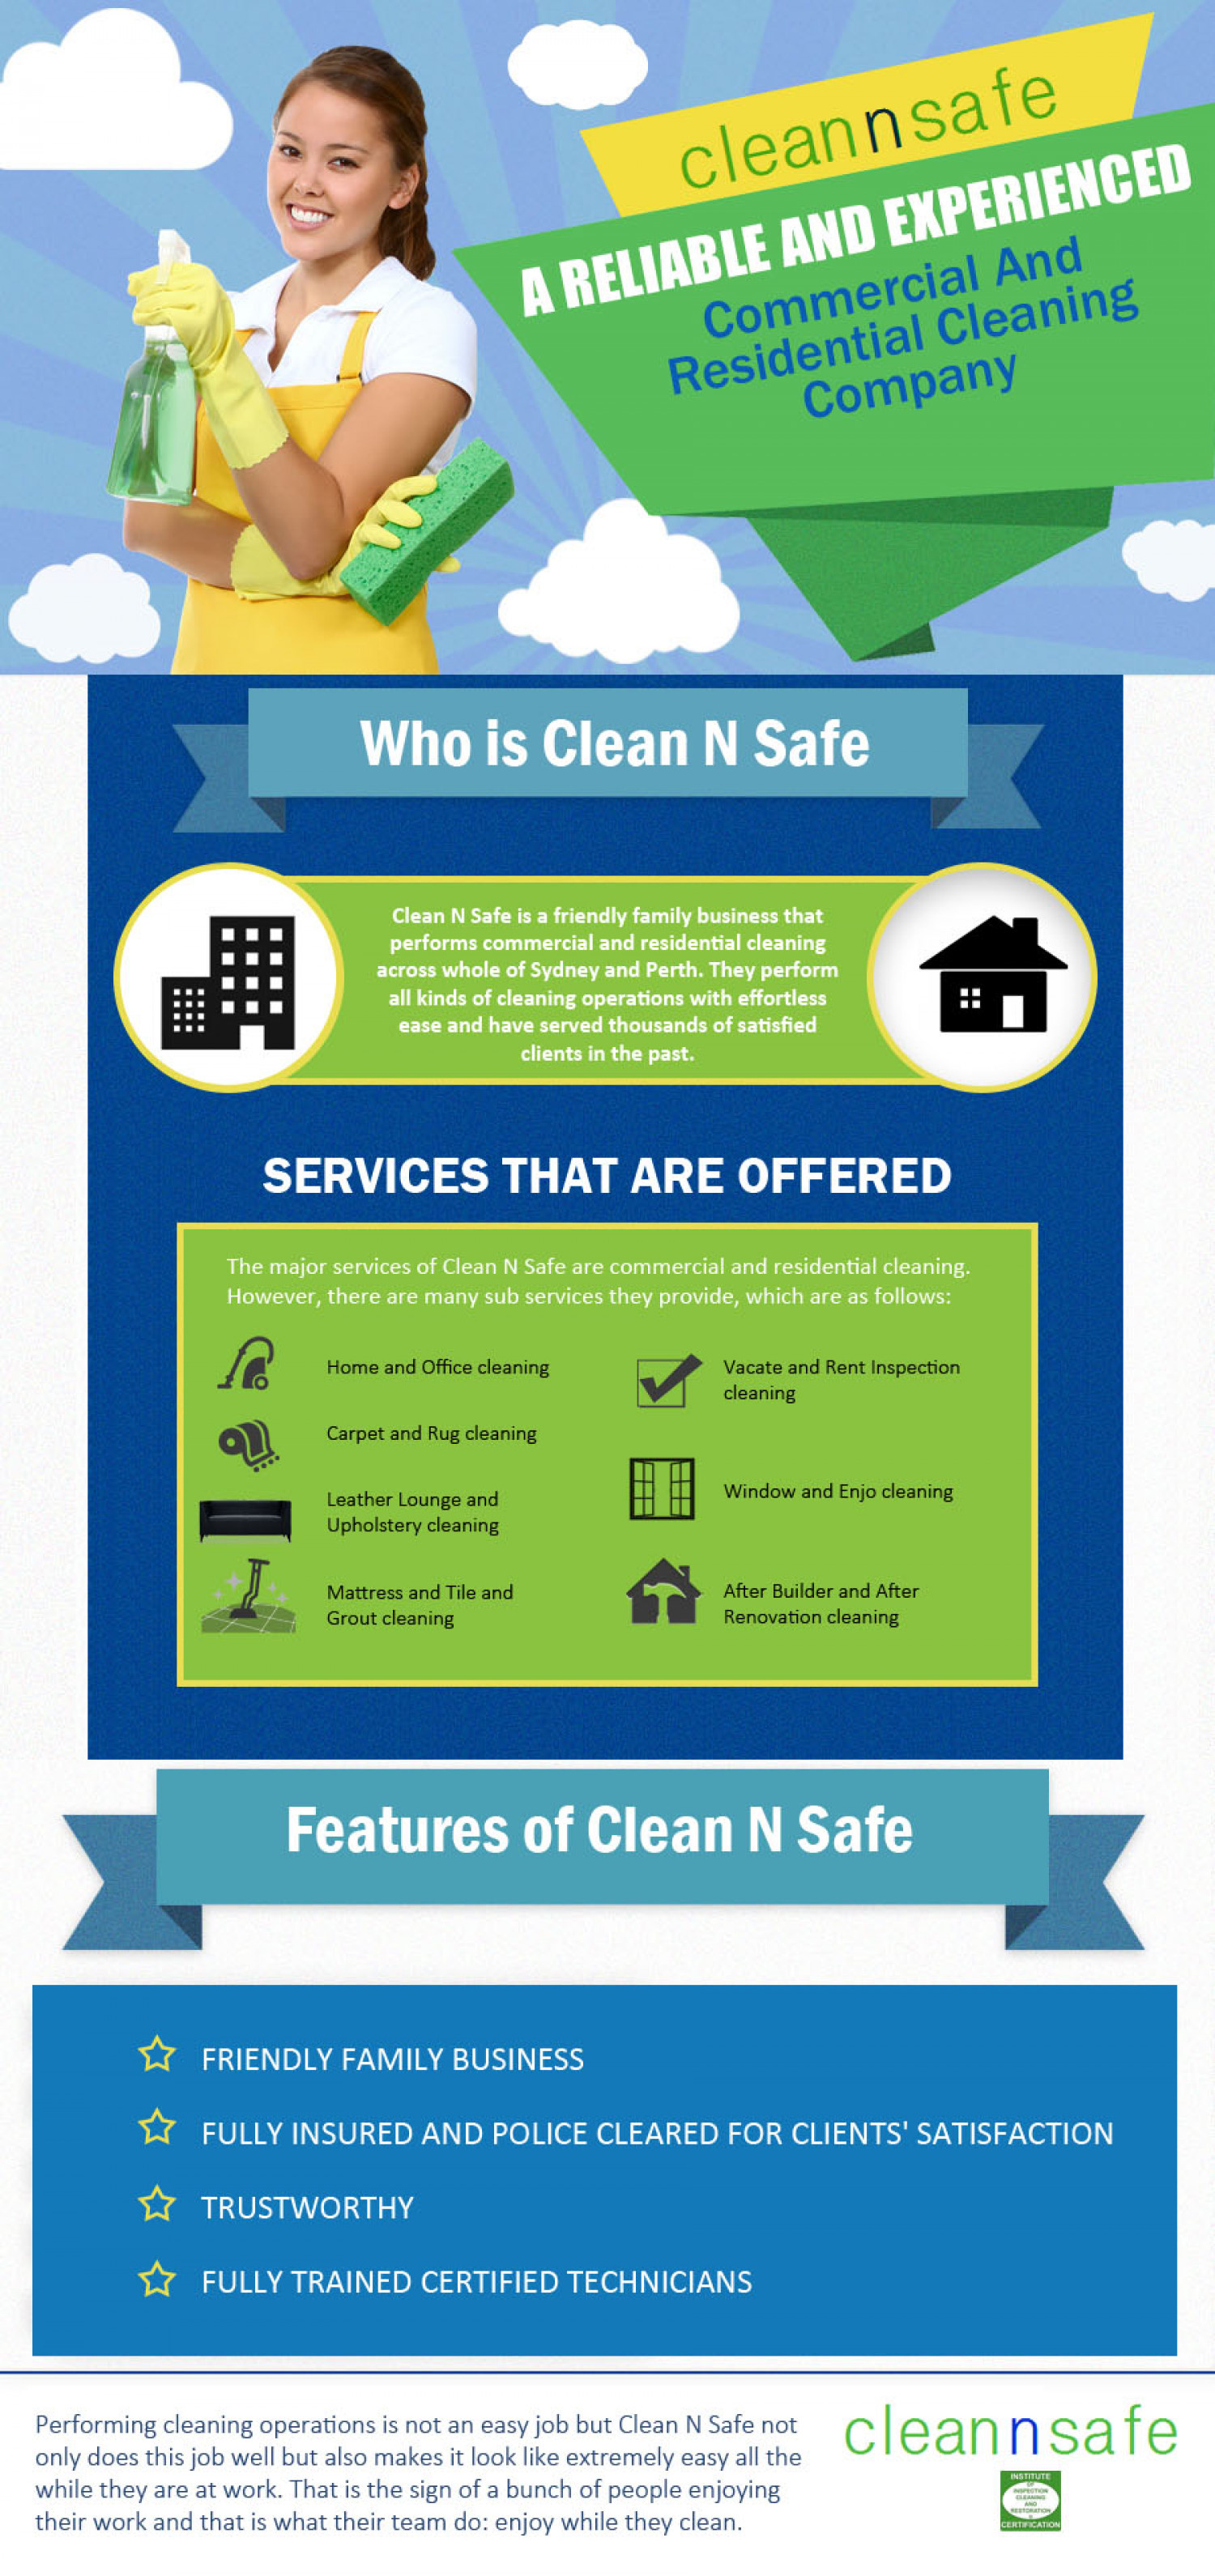 clean-n-safe-a-reliable-and-experienced-